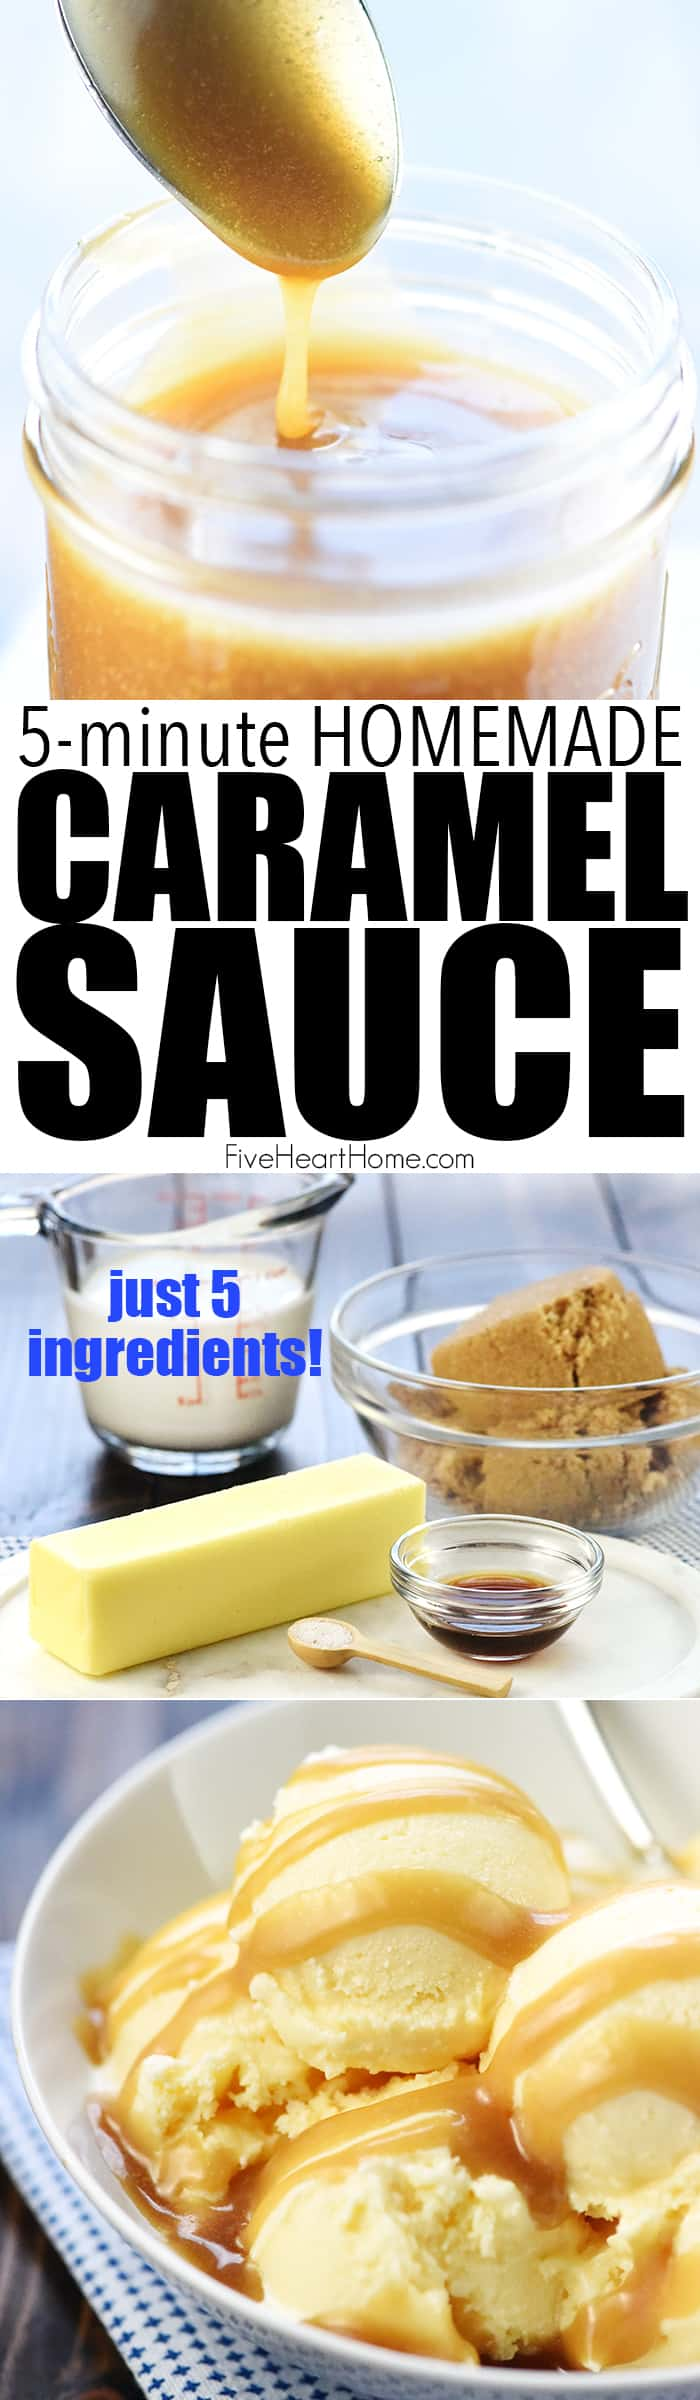 Easy Homemade Caramel Sauce, three-photo collage with text.